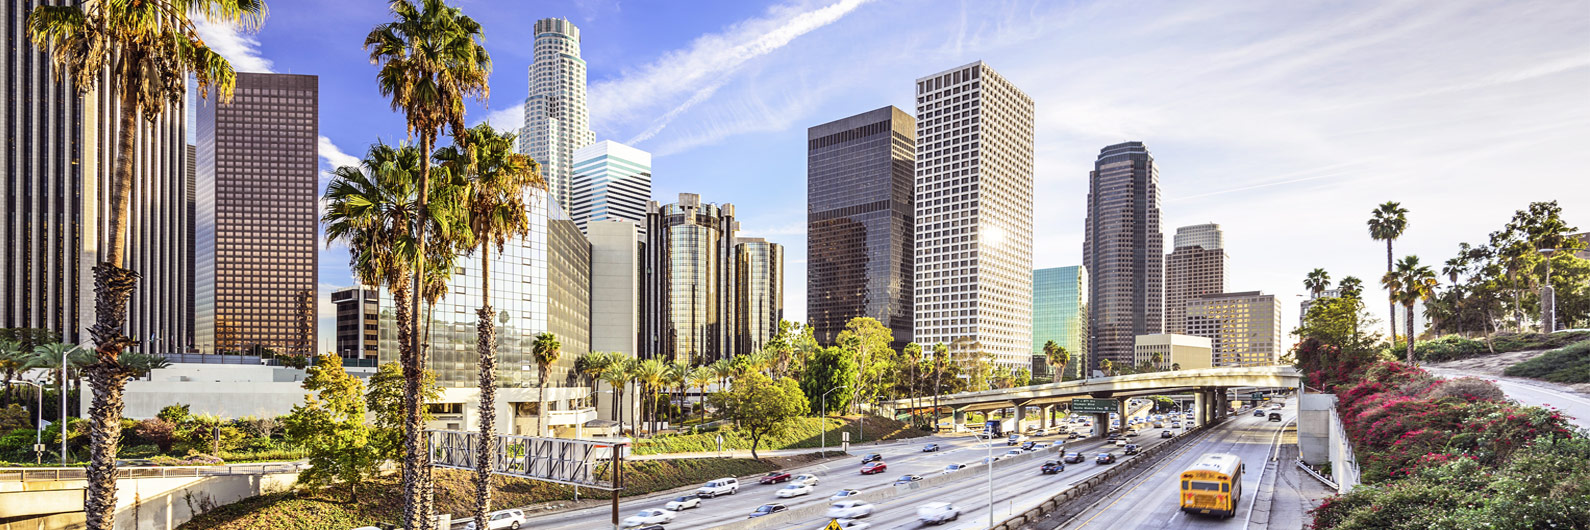 Cheap Flights From Orlando To Los Angeles Frontier Airlines